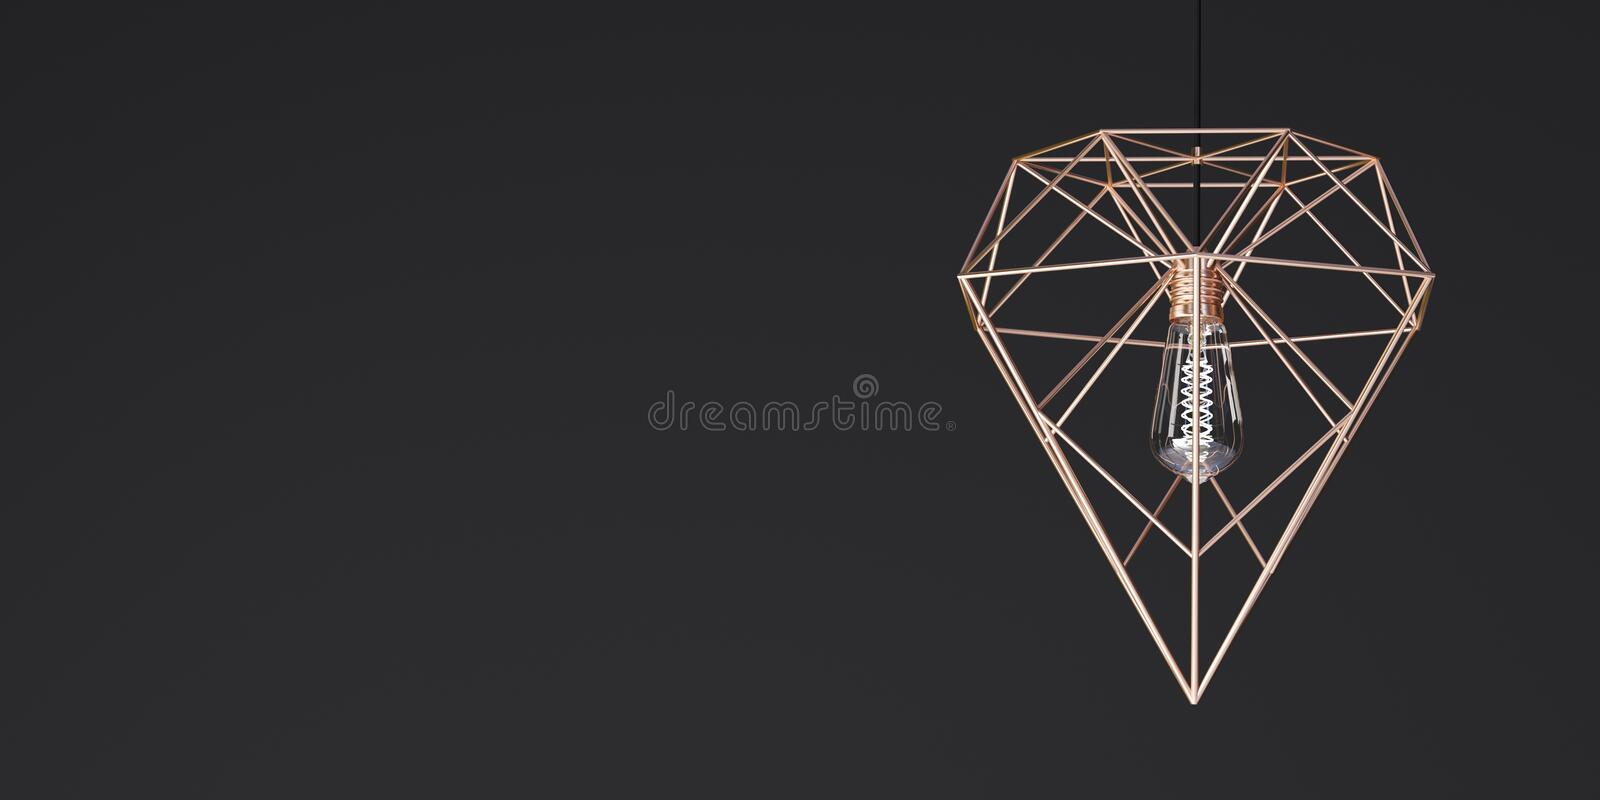 Pendant lamp of gold color in the form of a crystal on a black background - 3D illustration royalty free illustration